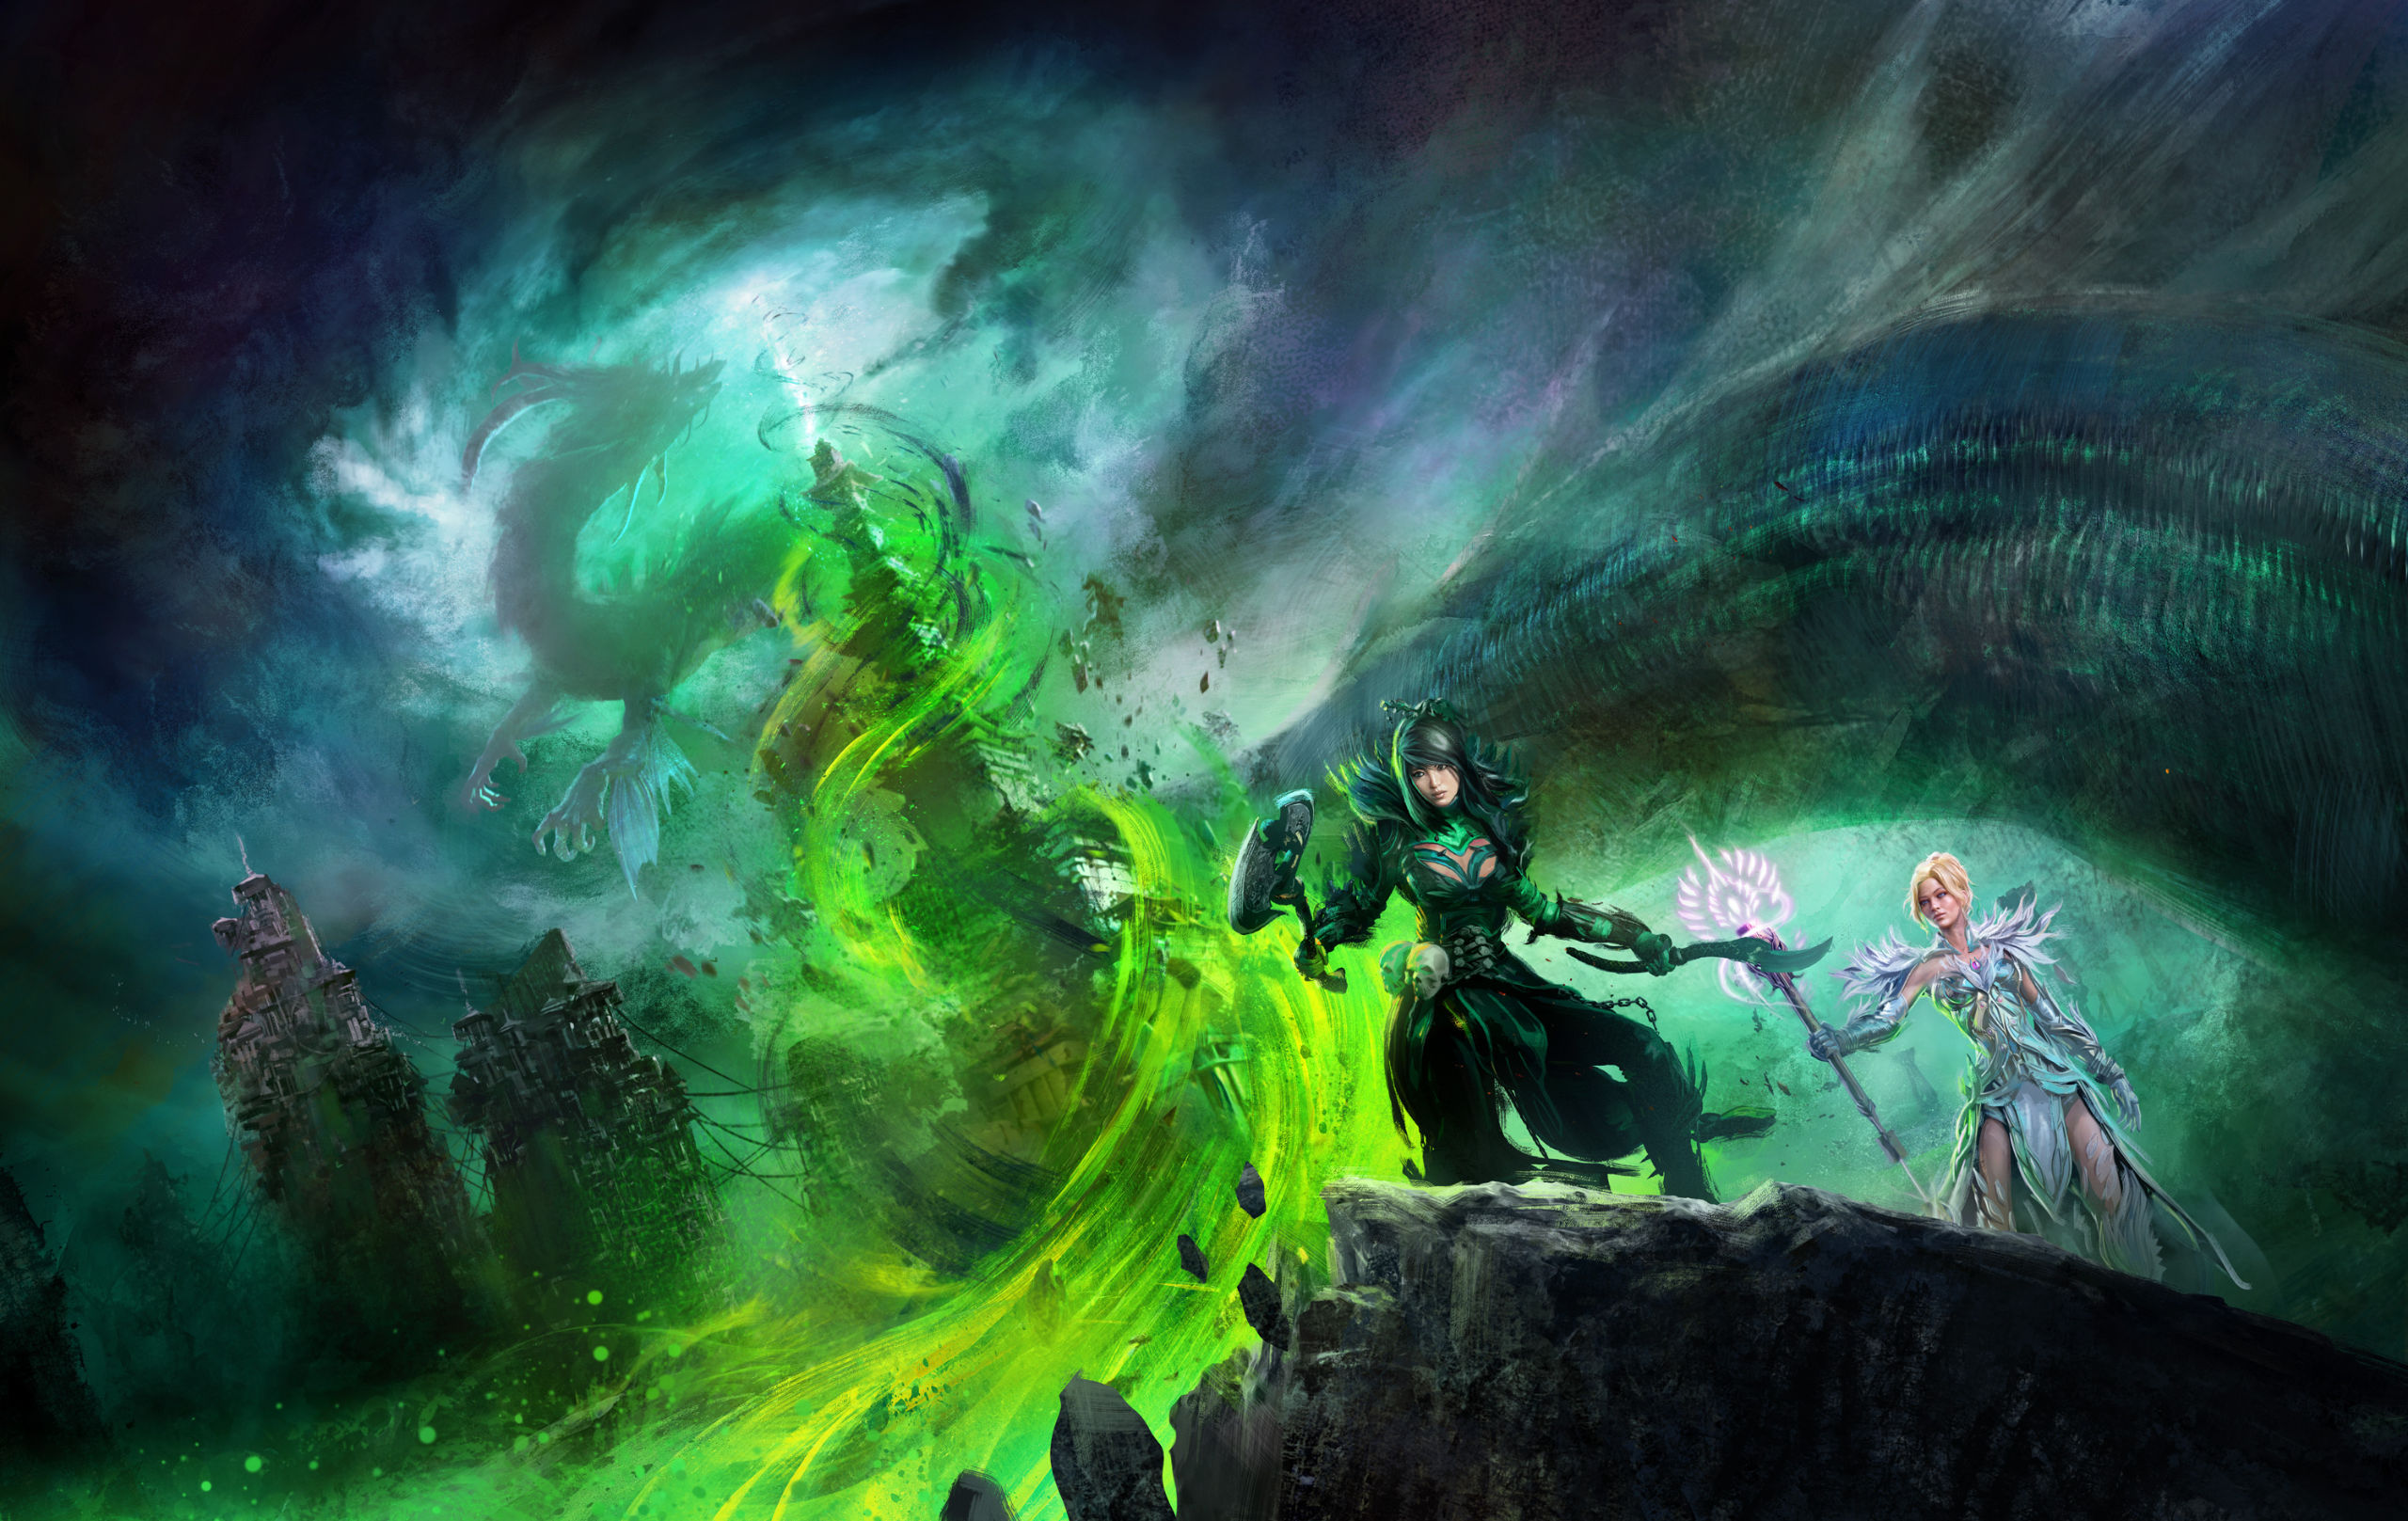 Guild Wars 2: End of Dragons artwork - A dragon flies around a tower engulfed in a spiral of green fire while two women watch from a distance.